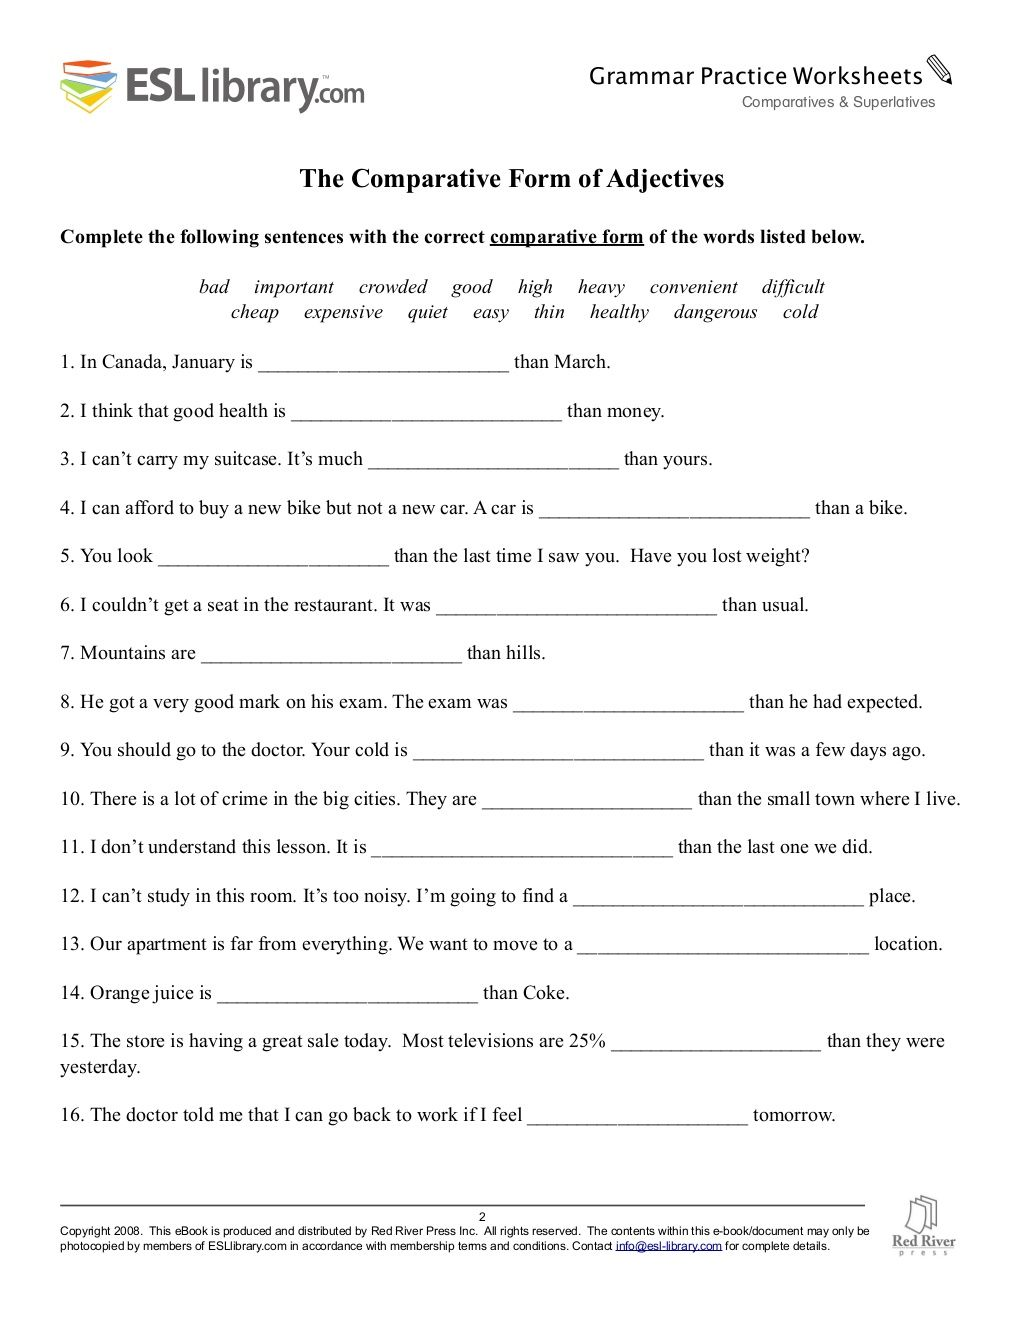 Comparatives Superlatives Worksheet With Answers In